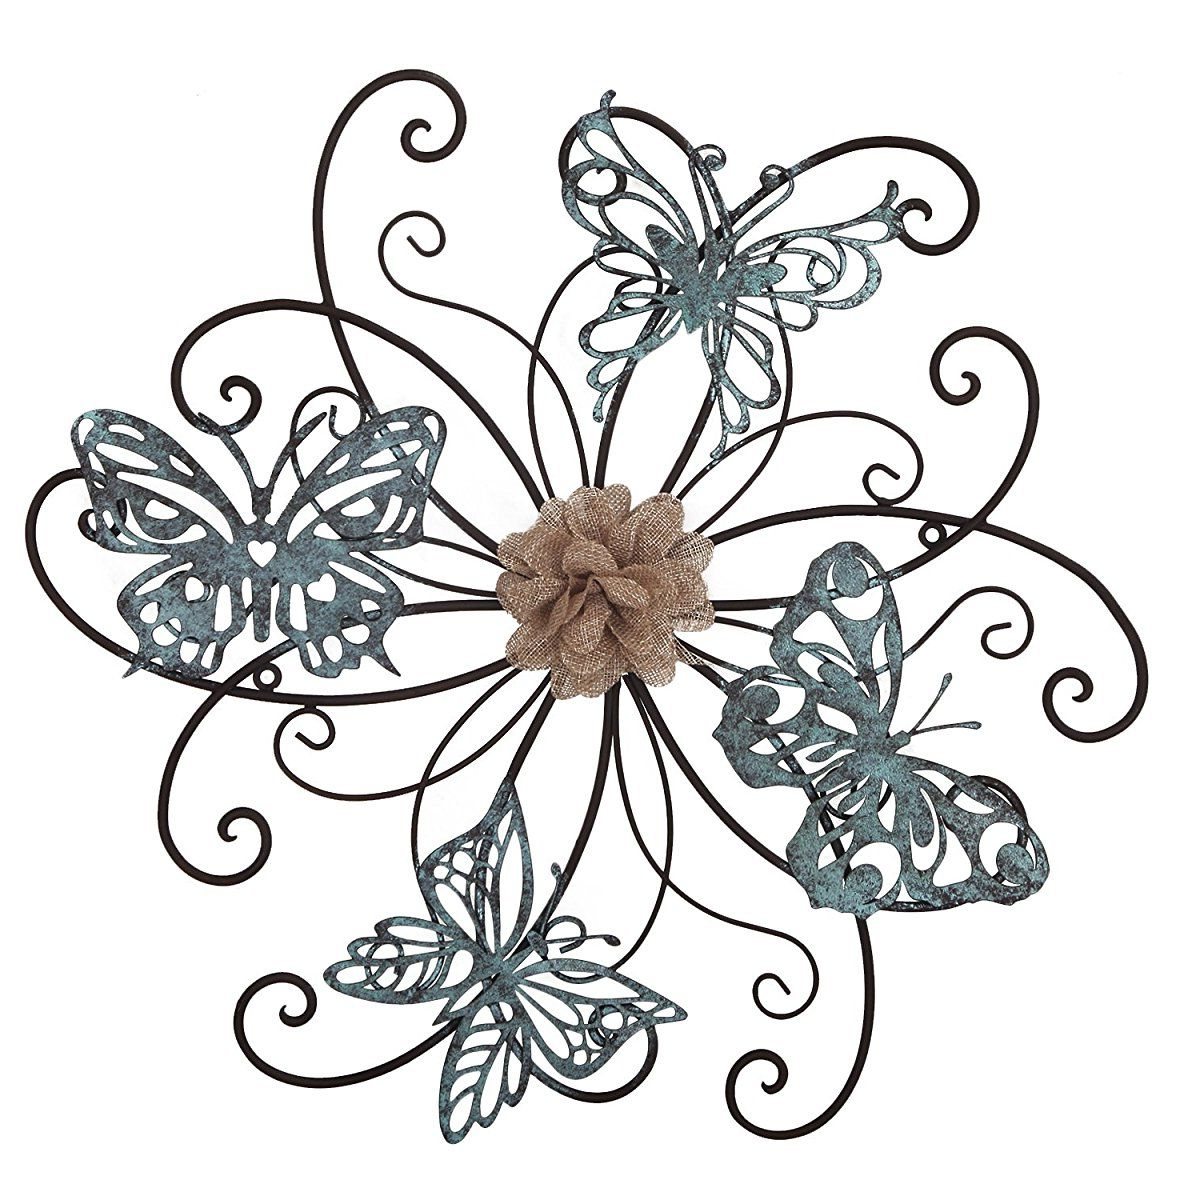 Homes Art Flower And Butterfly Urban Design Metal Wall Decor For For Famous Flower Urban Design Metal Wall Decor (View 14 of 20)